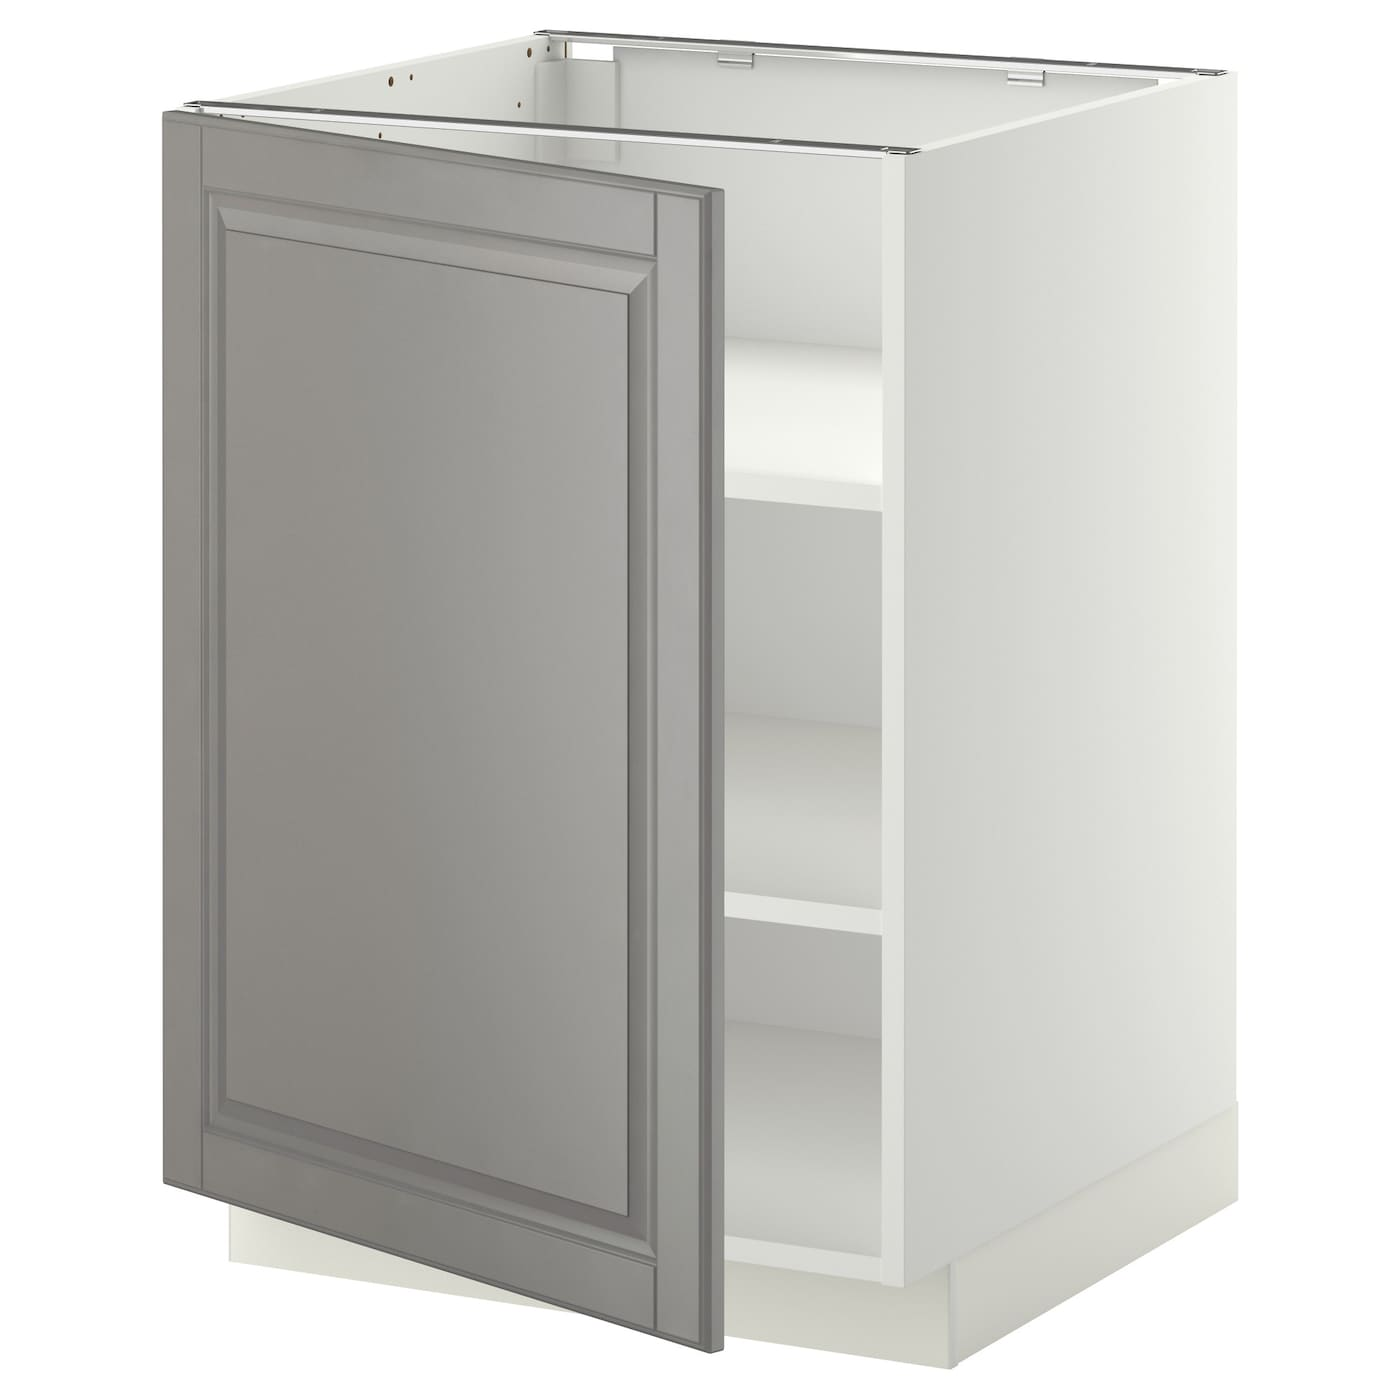 Metod Base Cabinet With Shelves White Bodbyn Grey 60x60 Cm Ikea